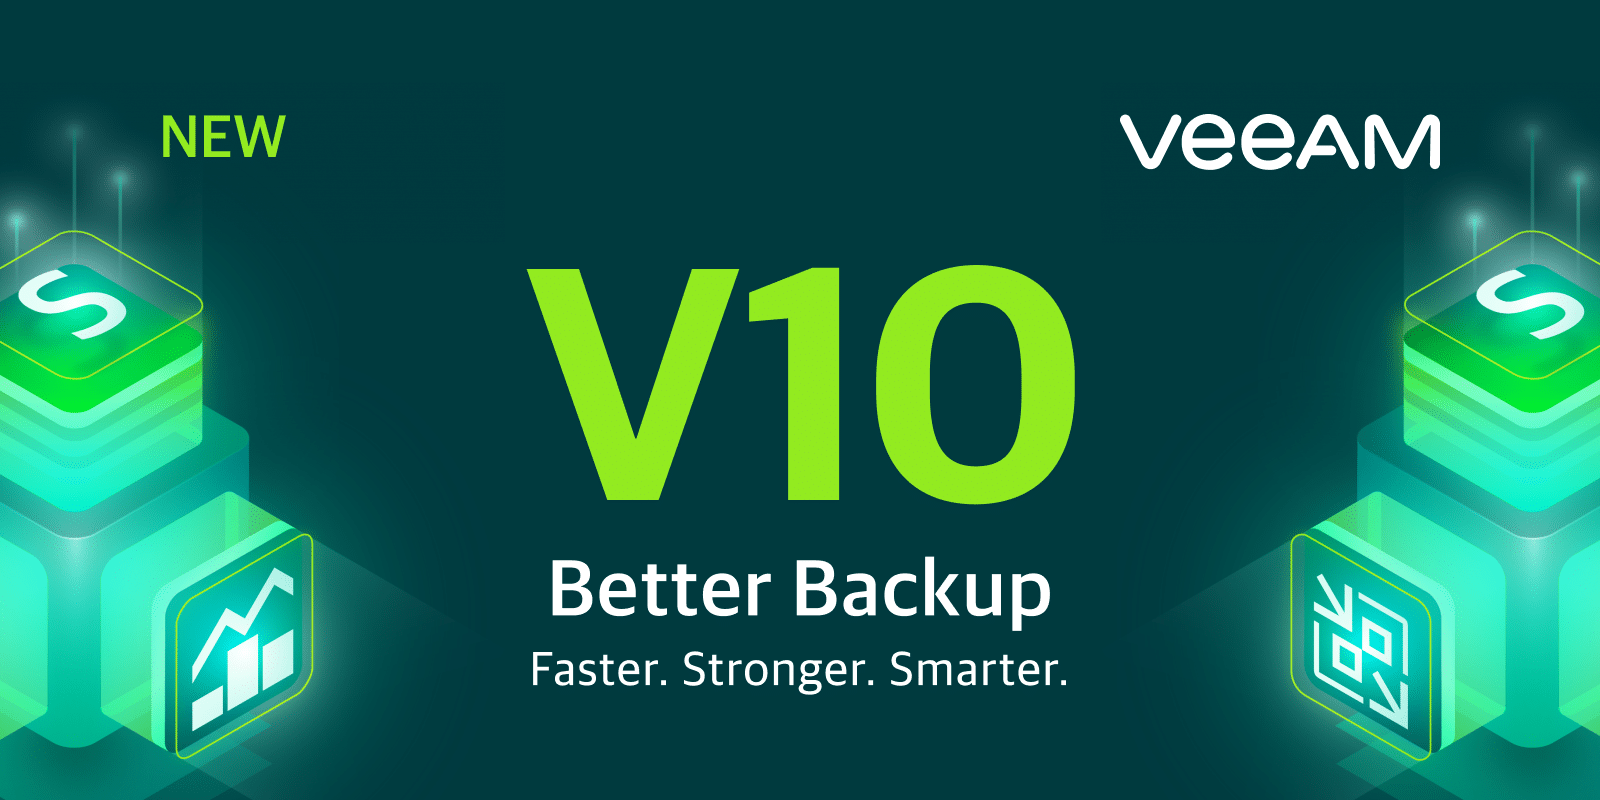 https://www.jumpcomputer.it/wp-content/uploads/veeam-v10.png